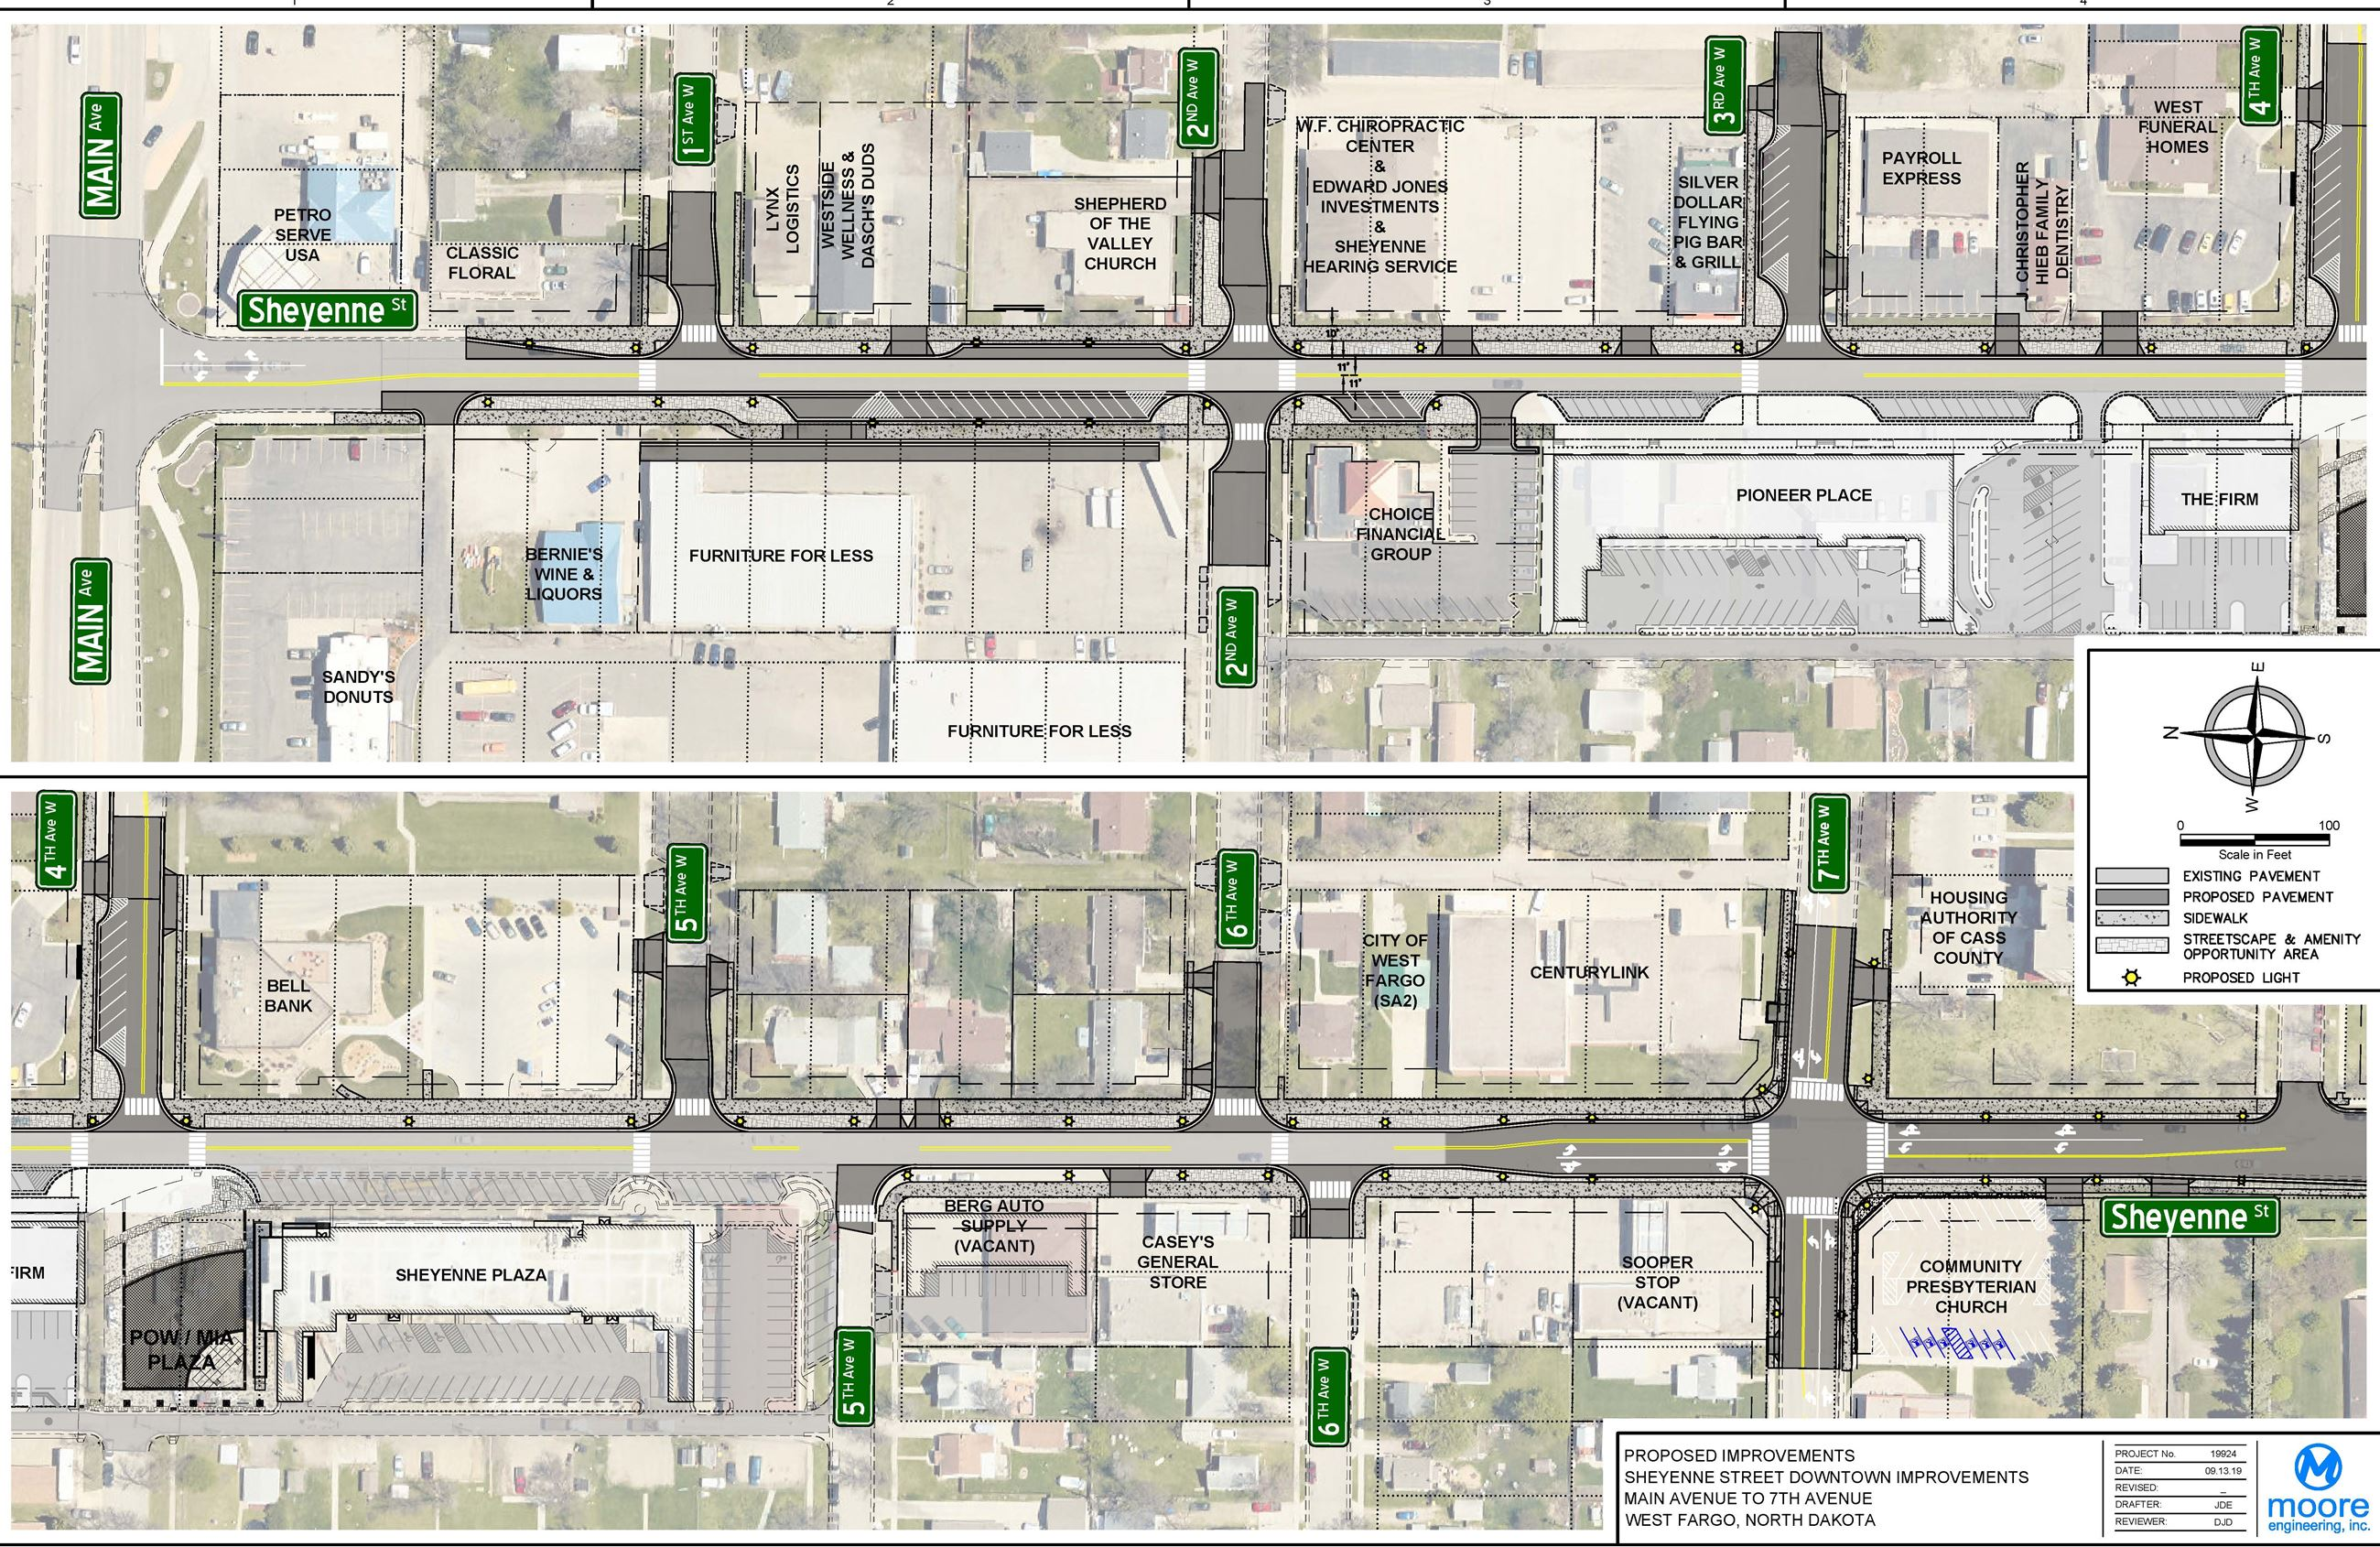 Sheyenne Street Downtown Road Improvements Map